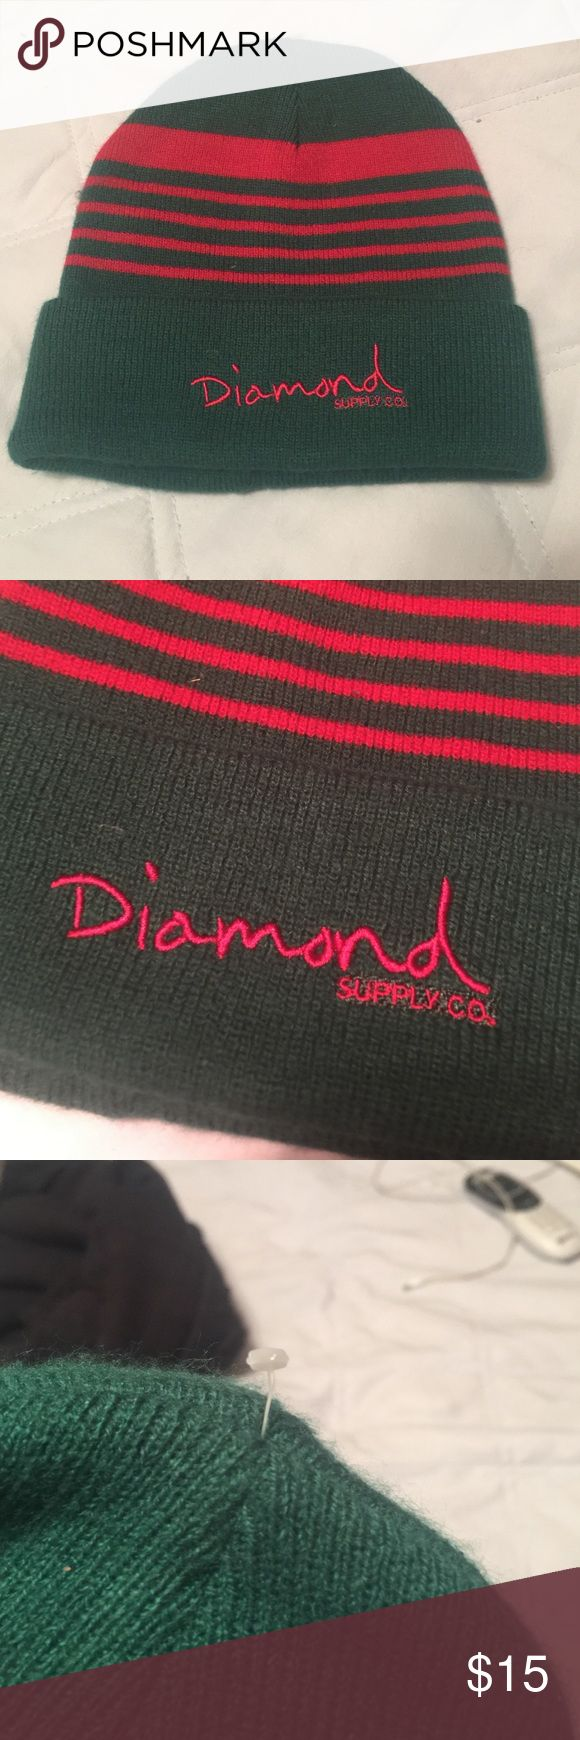 Beanie Diamond supply company beanie. It's that time of year have to keep the heat in with this great little beanie. It is new without tags the price tag thing is still attached at top as shown in last pic. It is green with red stripes Diamond Supply Co. Accessories Hats